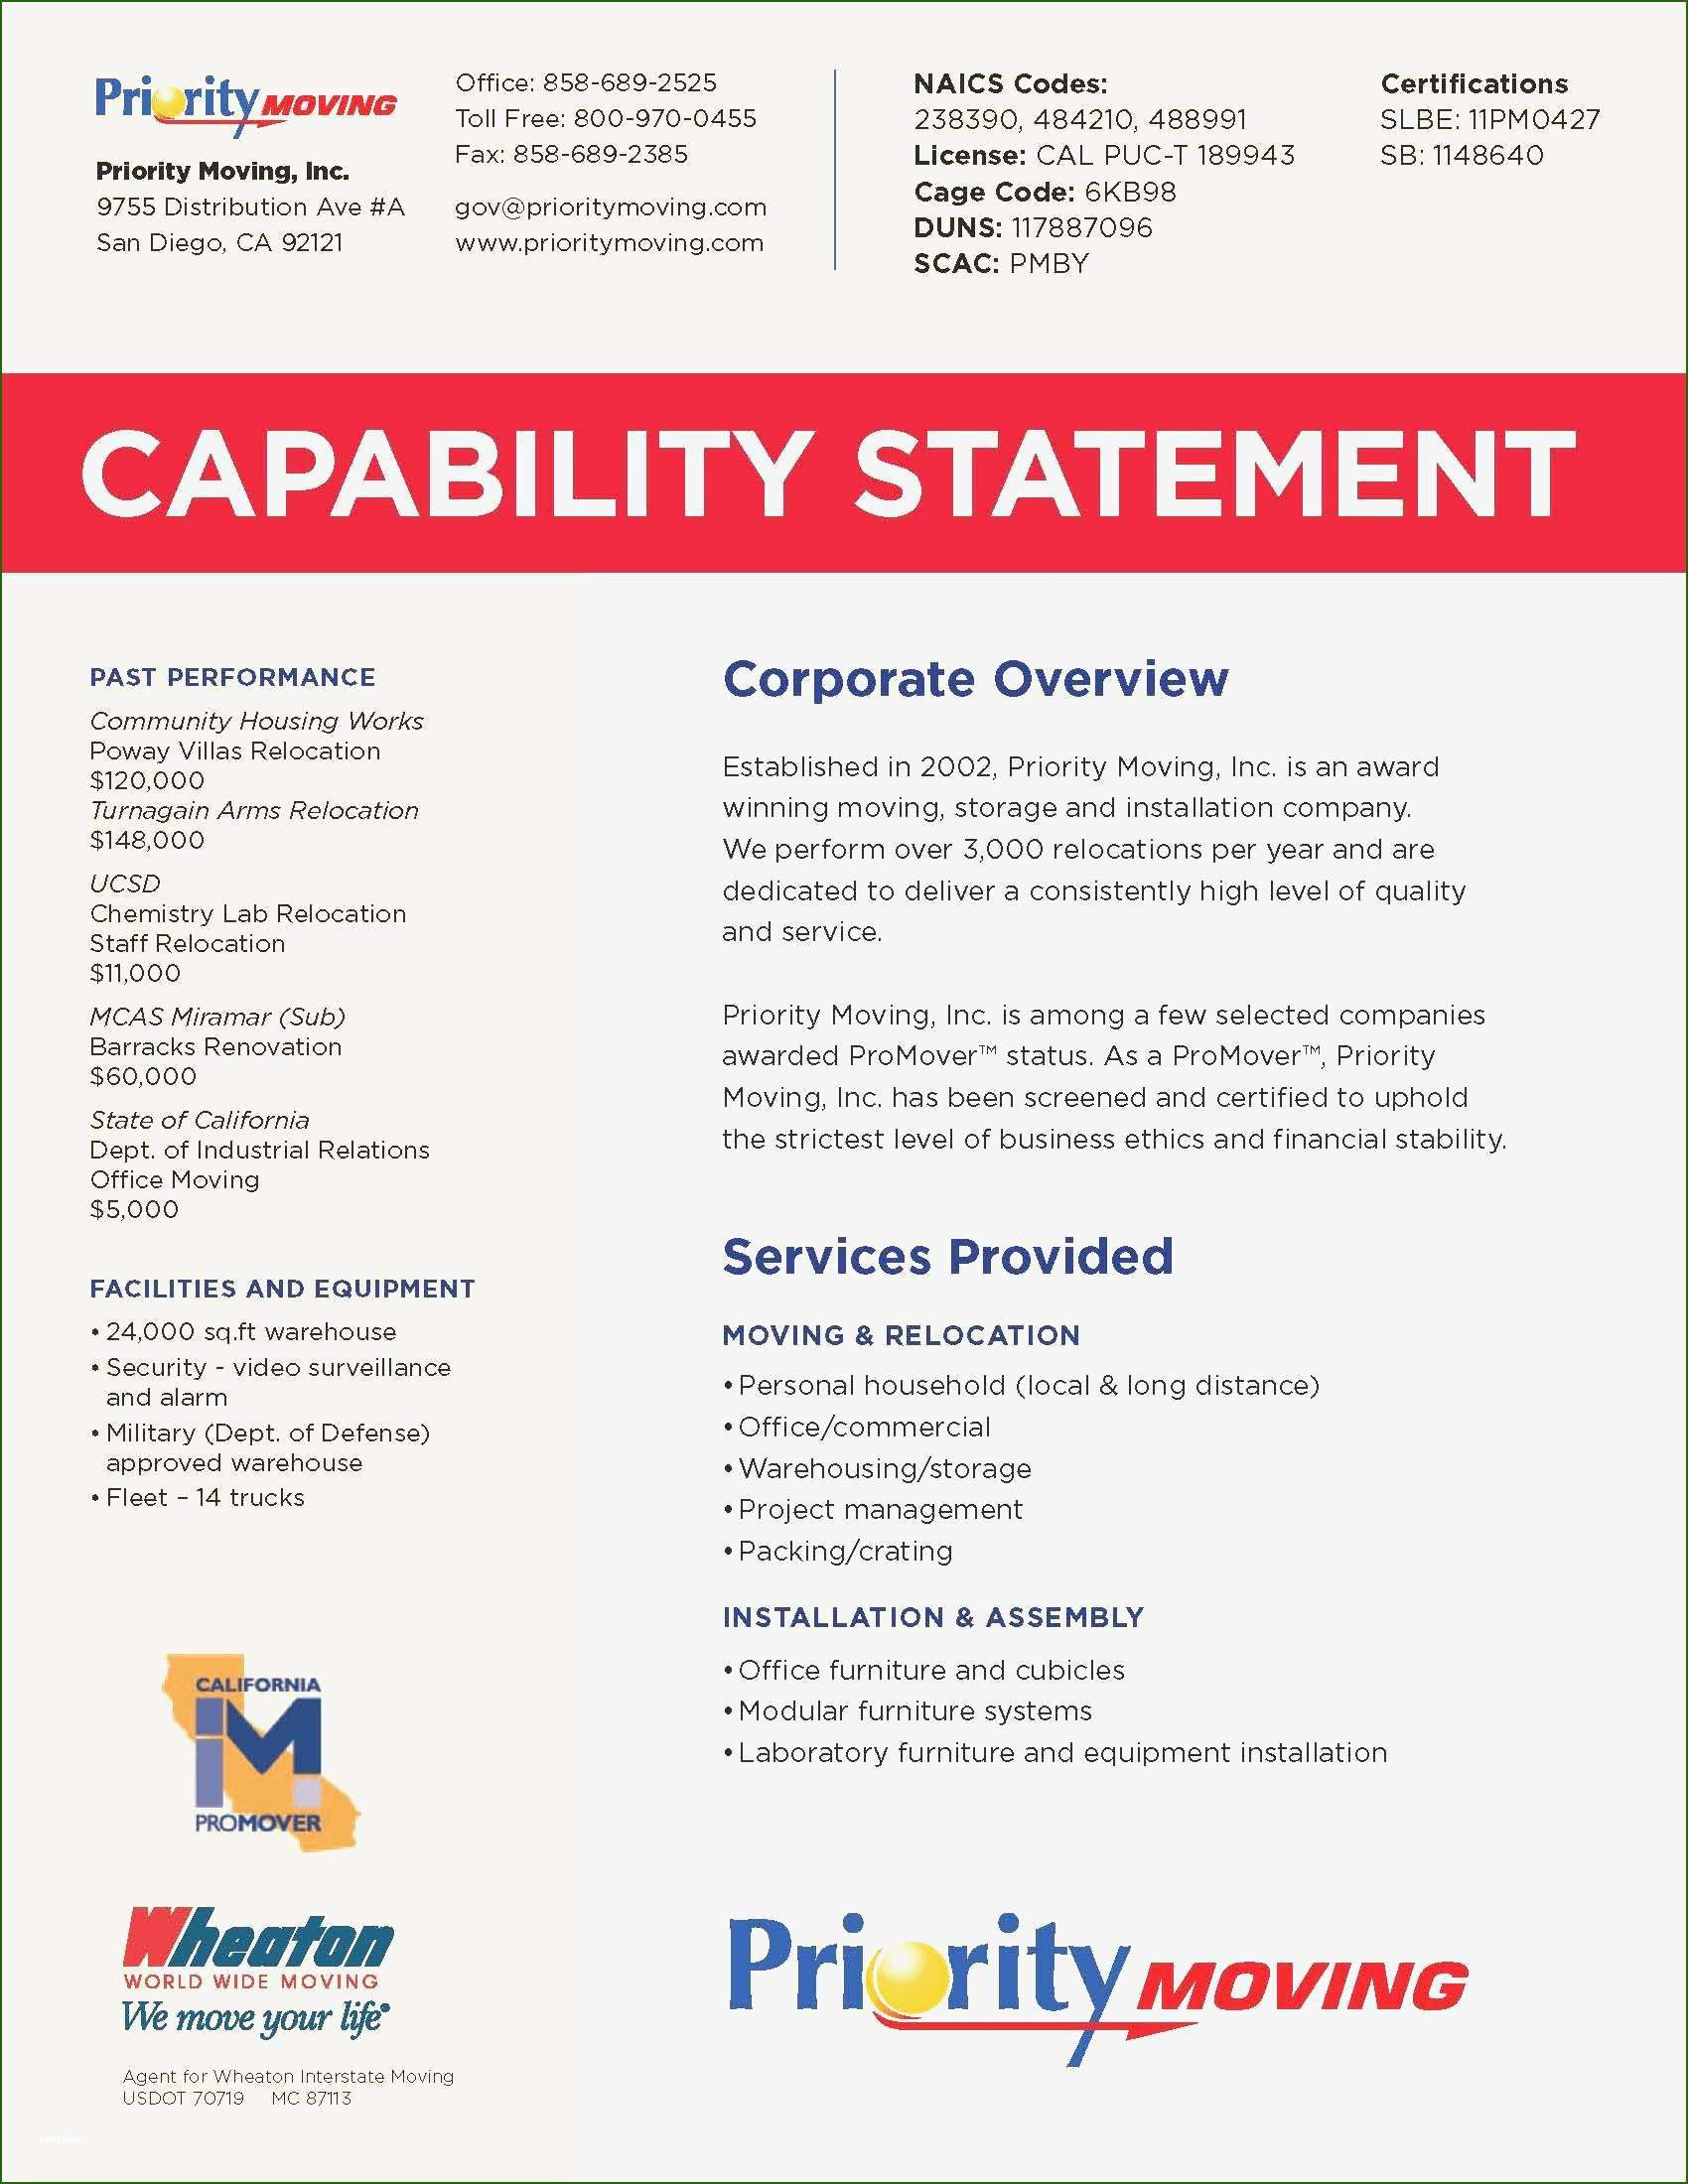 001 Sensational Capability Statement Template Word Doc Idea  Document FreeFull